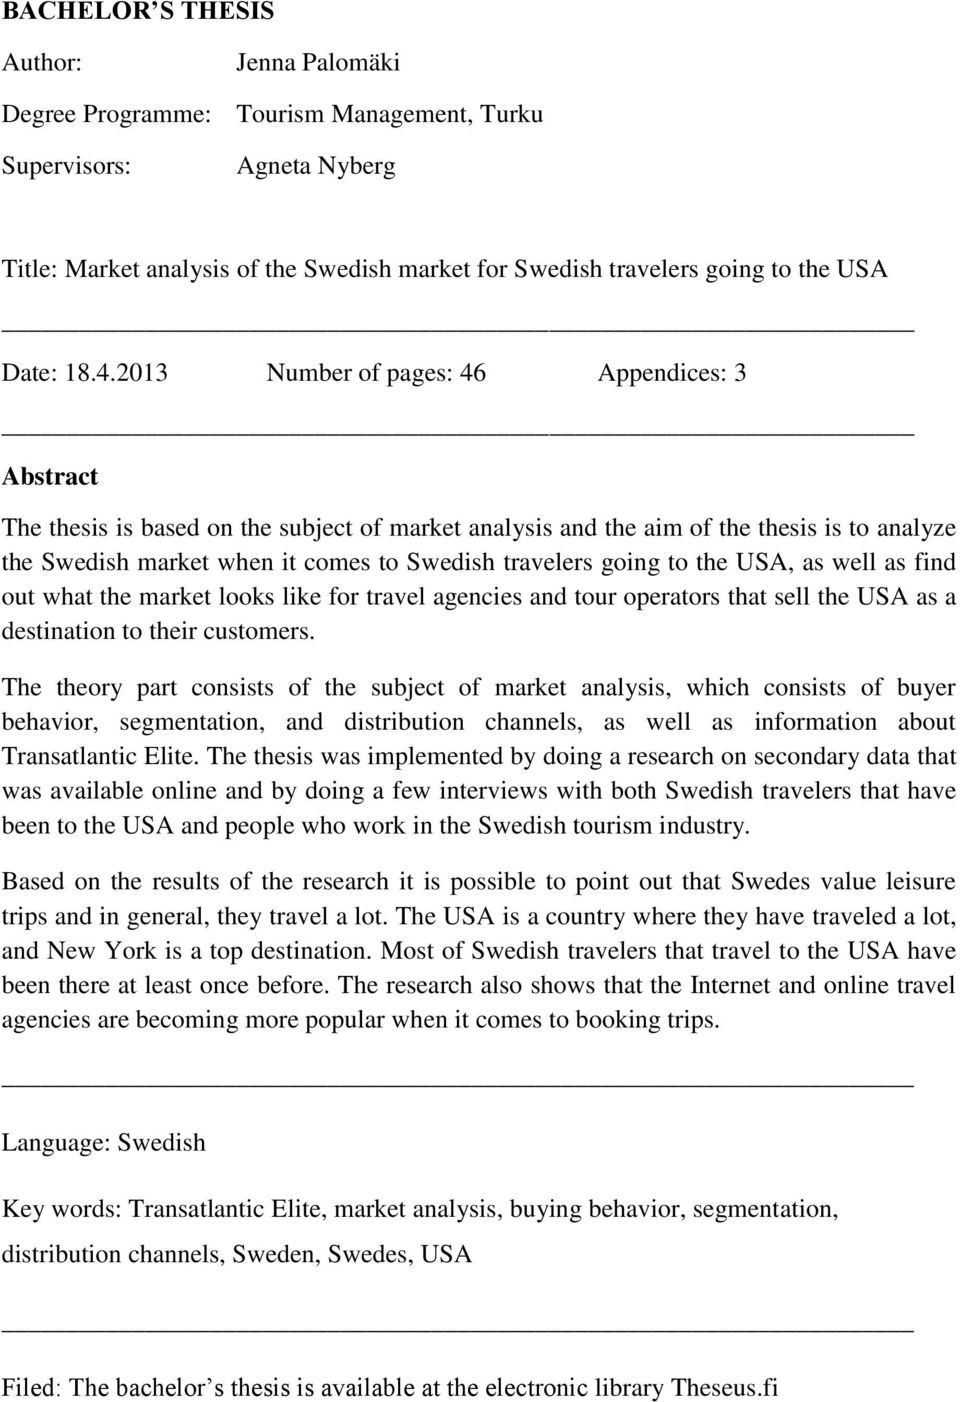 2013 Number of pages: 46 Appendices: 3 Abstract The thesis is based on the subject of market analysis and the aim of the thesis is to analyze the Swedish market when it comes to Swedish travelers